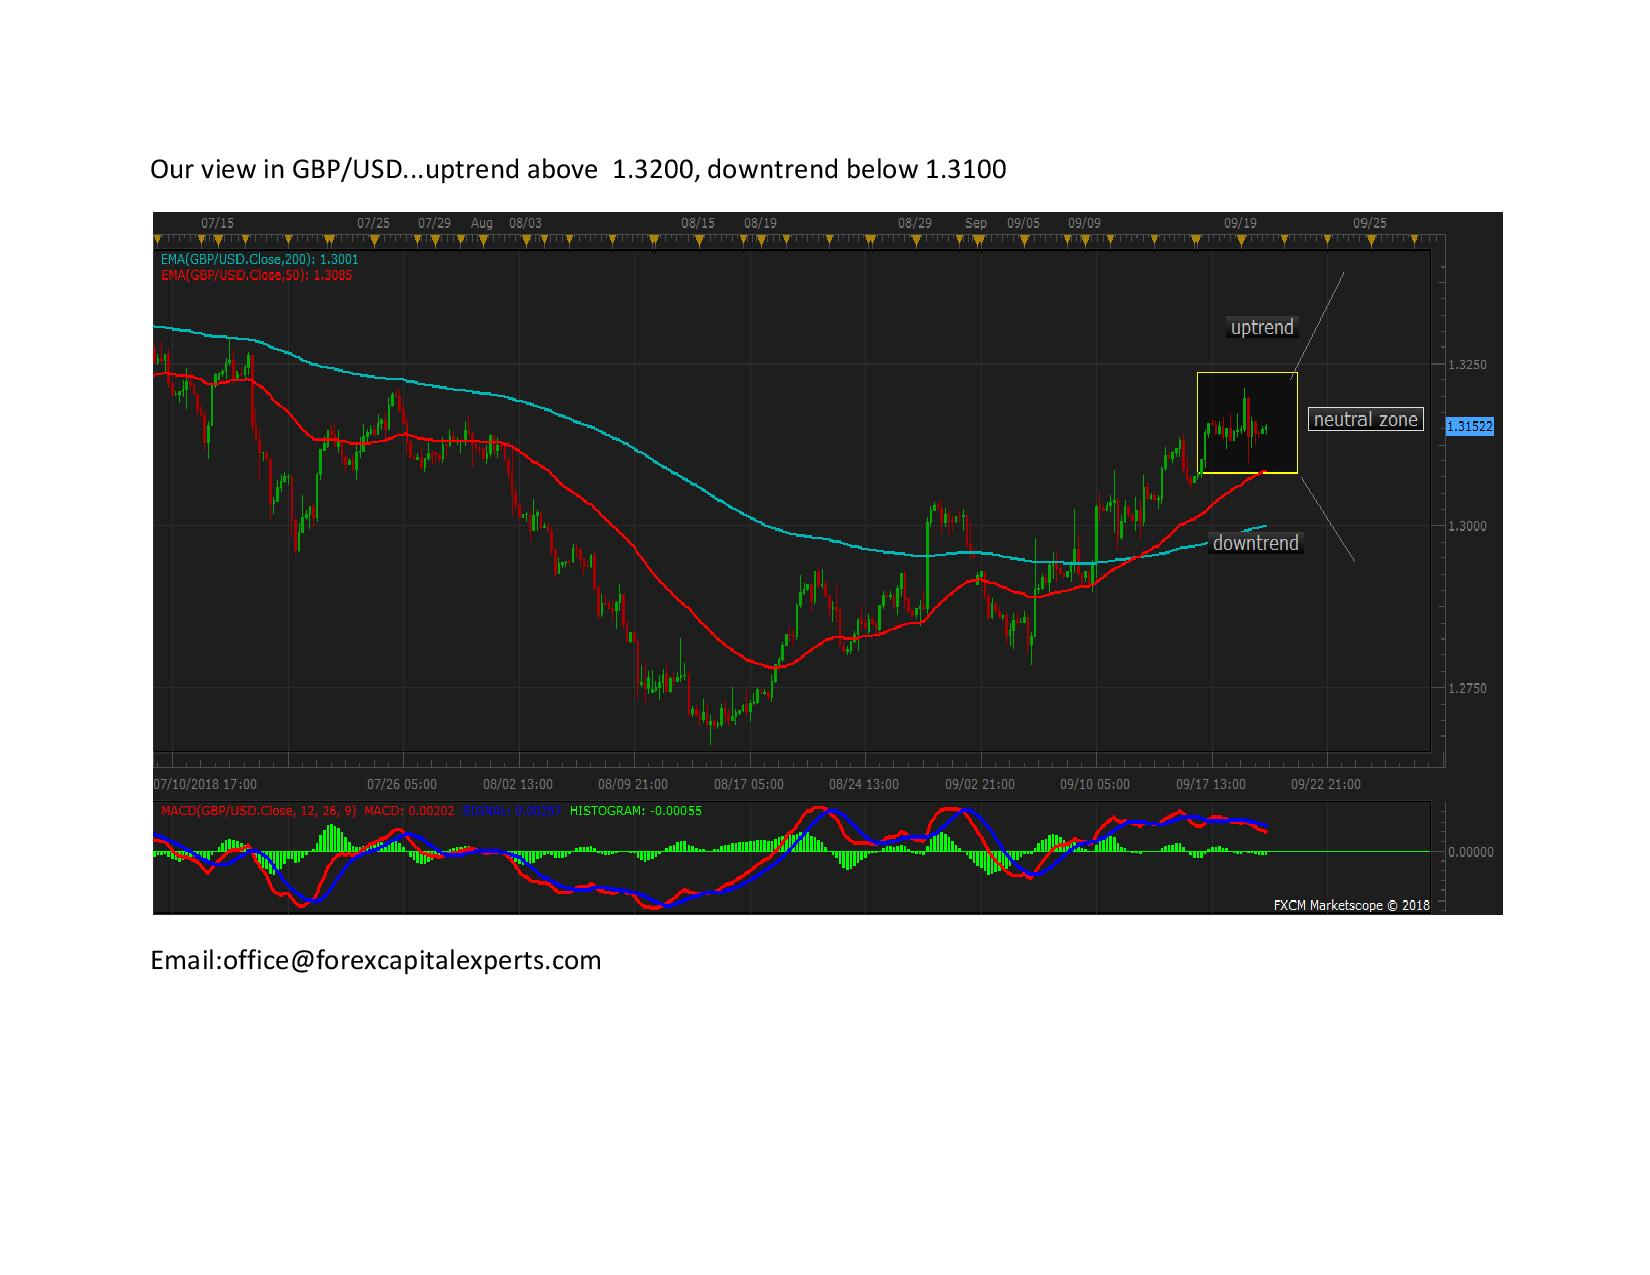 Our view in GBPUSD page 00